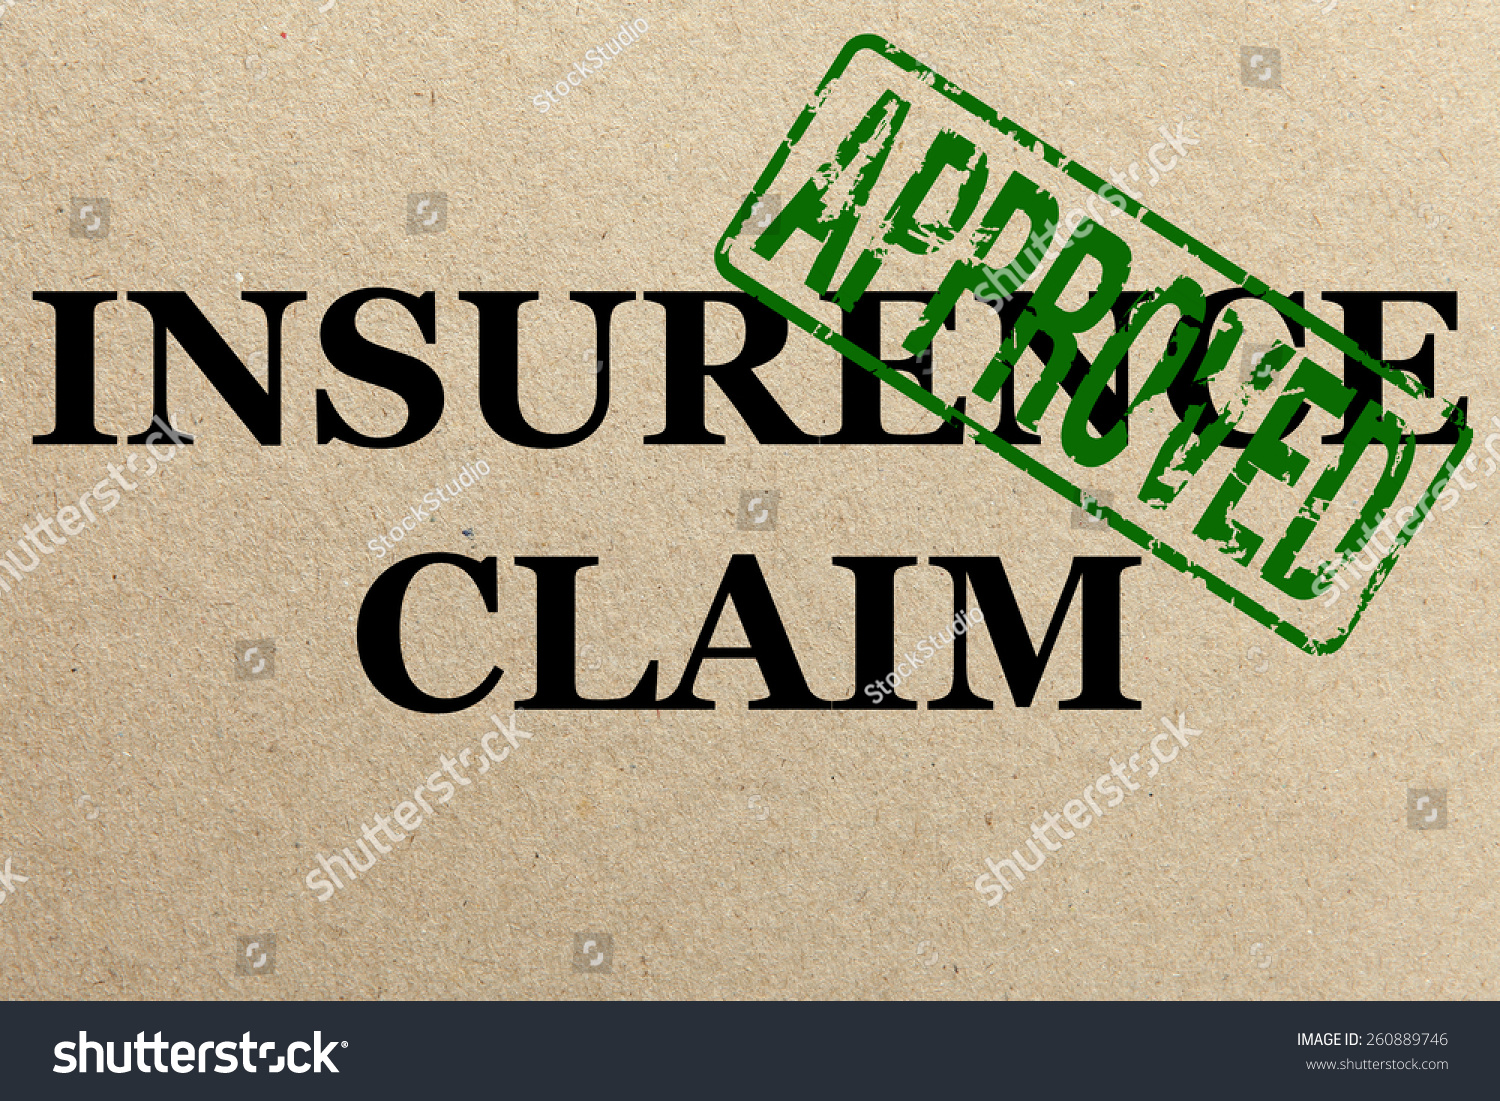 Thesis on insurance claims